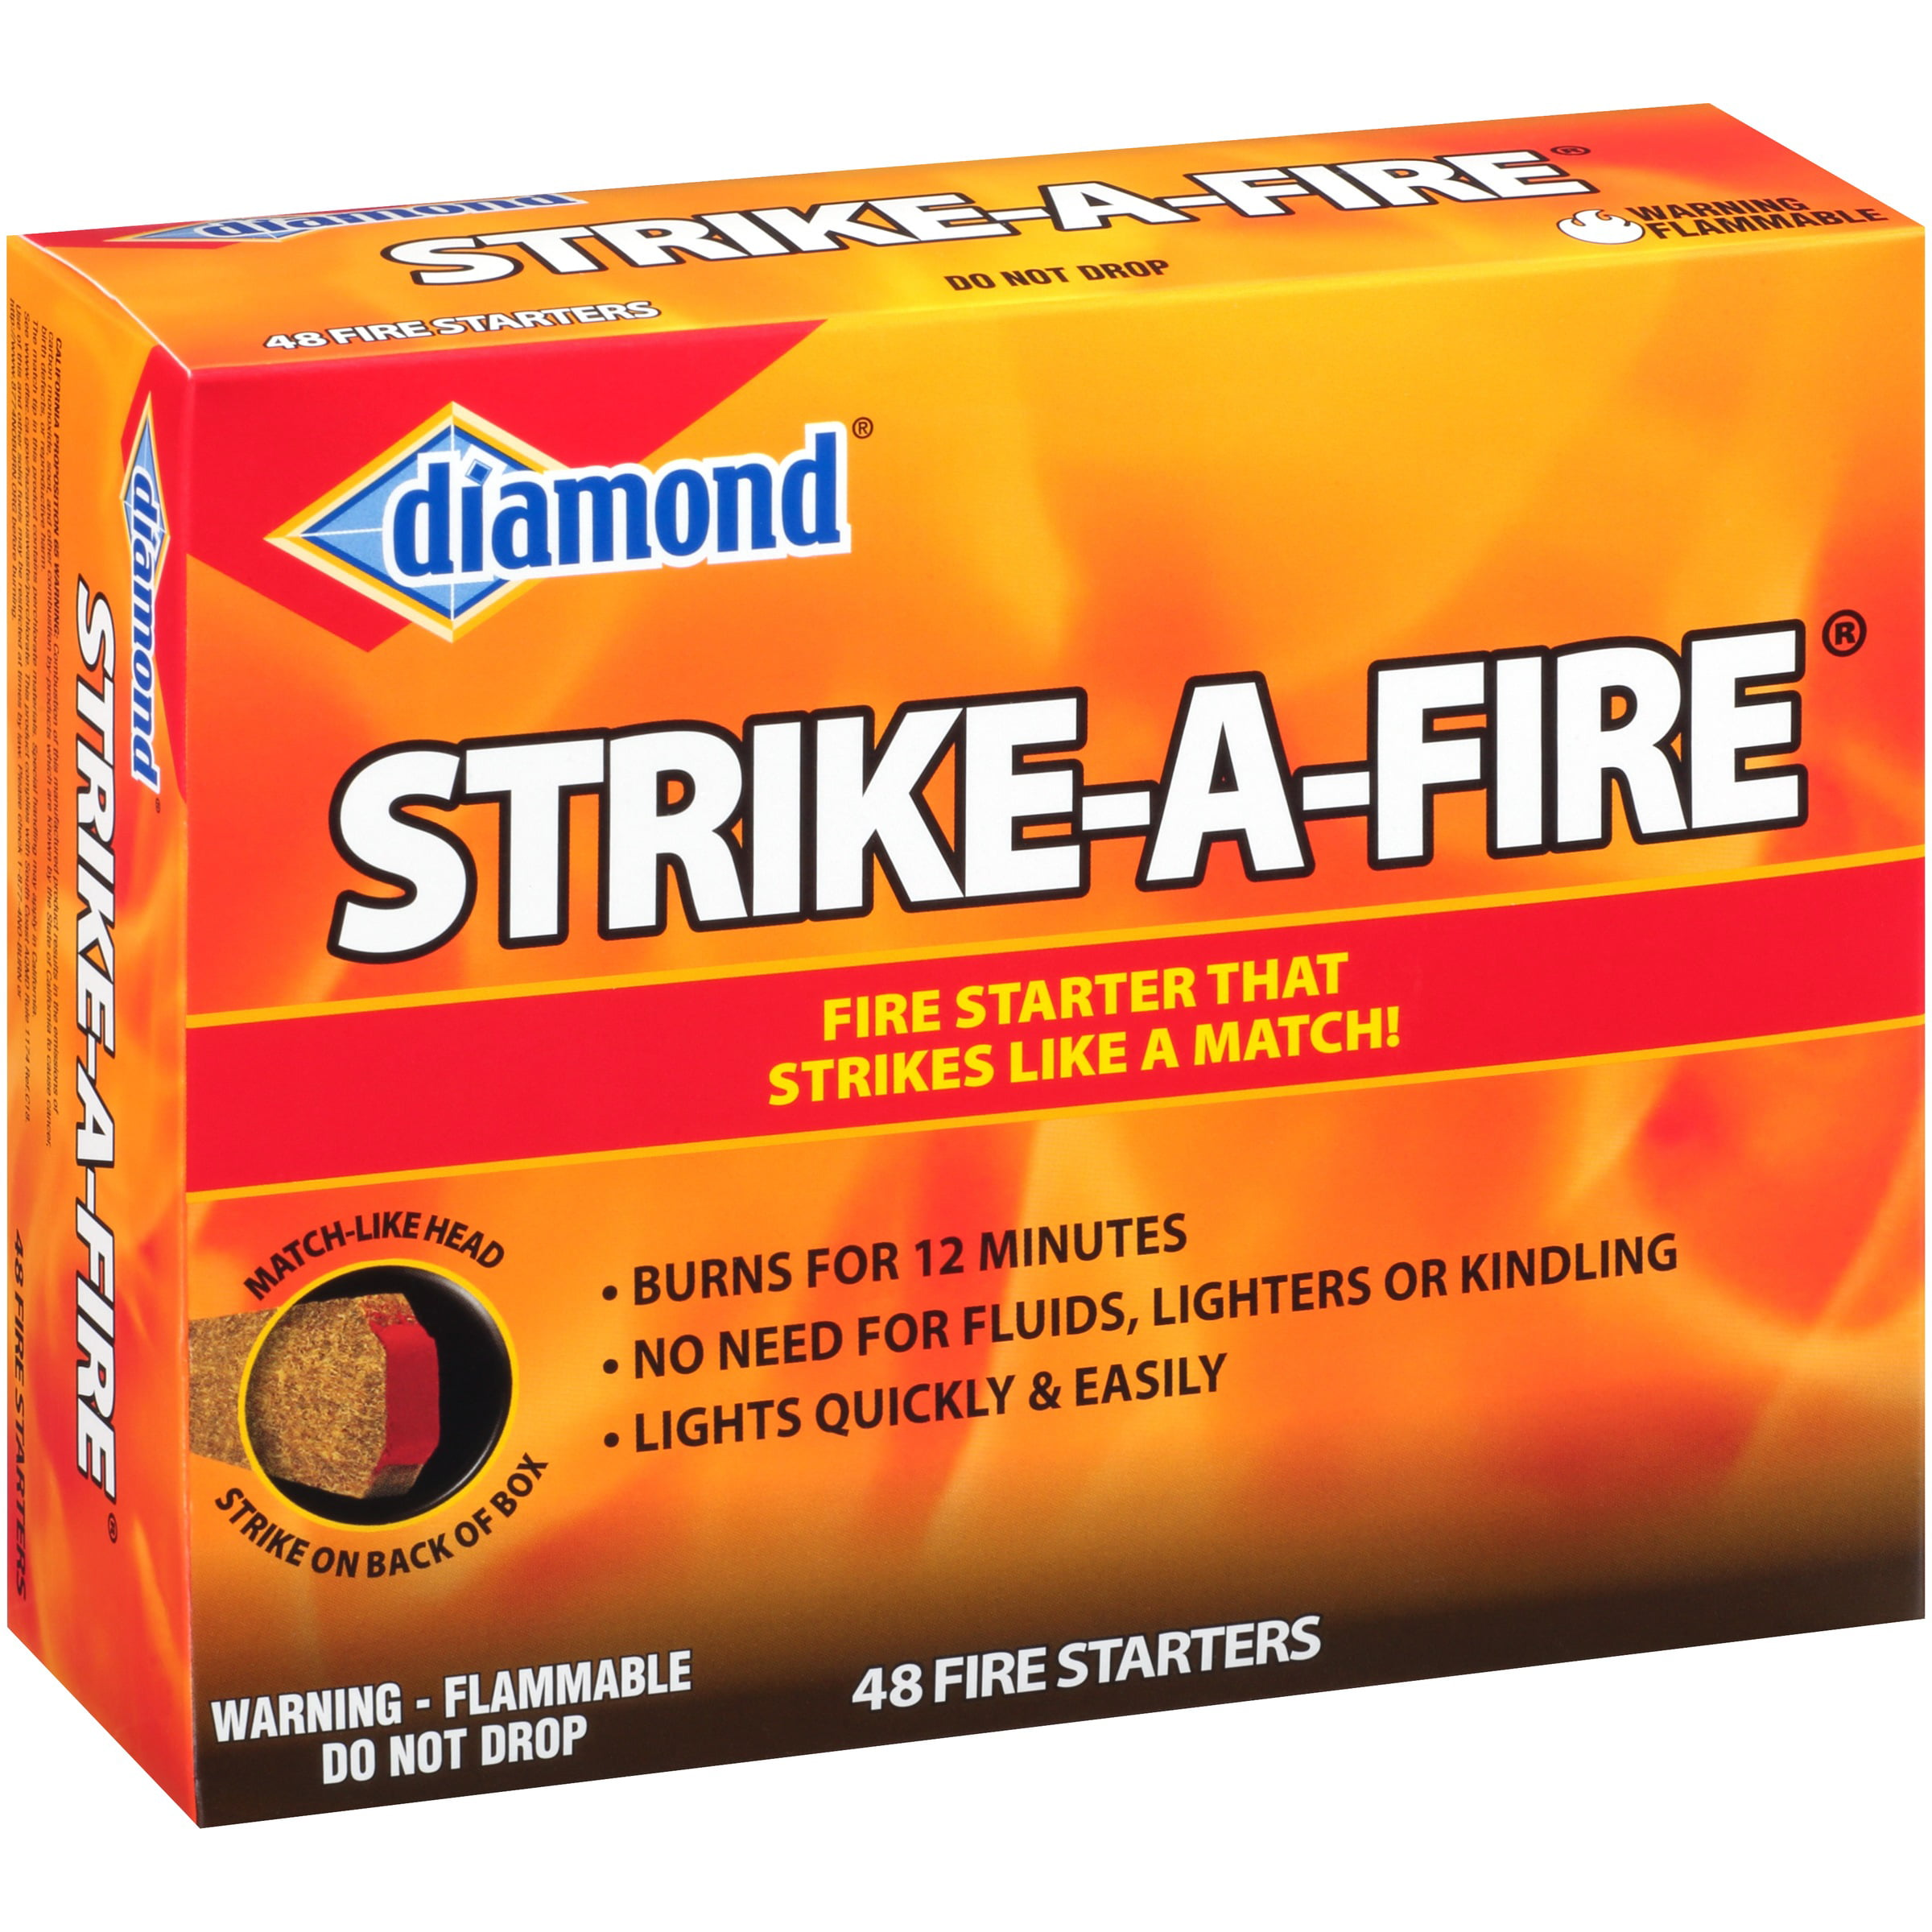 Diamond Strike-A-Fire Fire Starters 48 ct Box by Hearthmark, LLC dba Jarden Home Brands